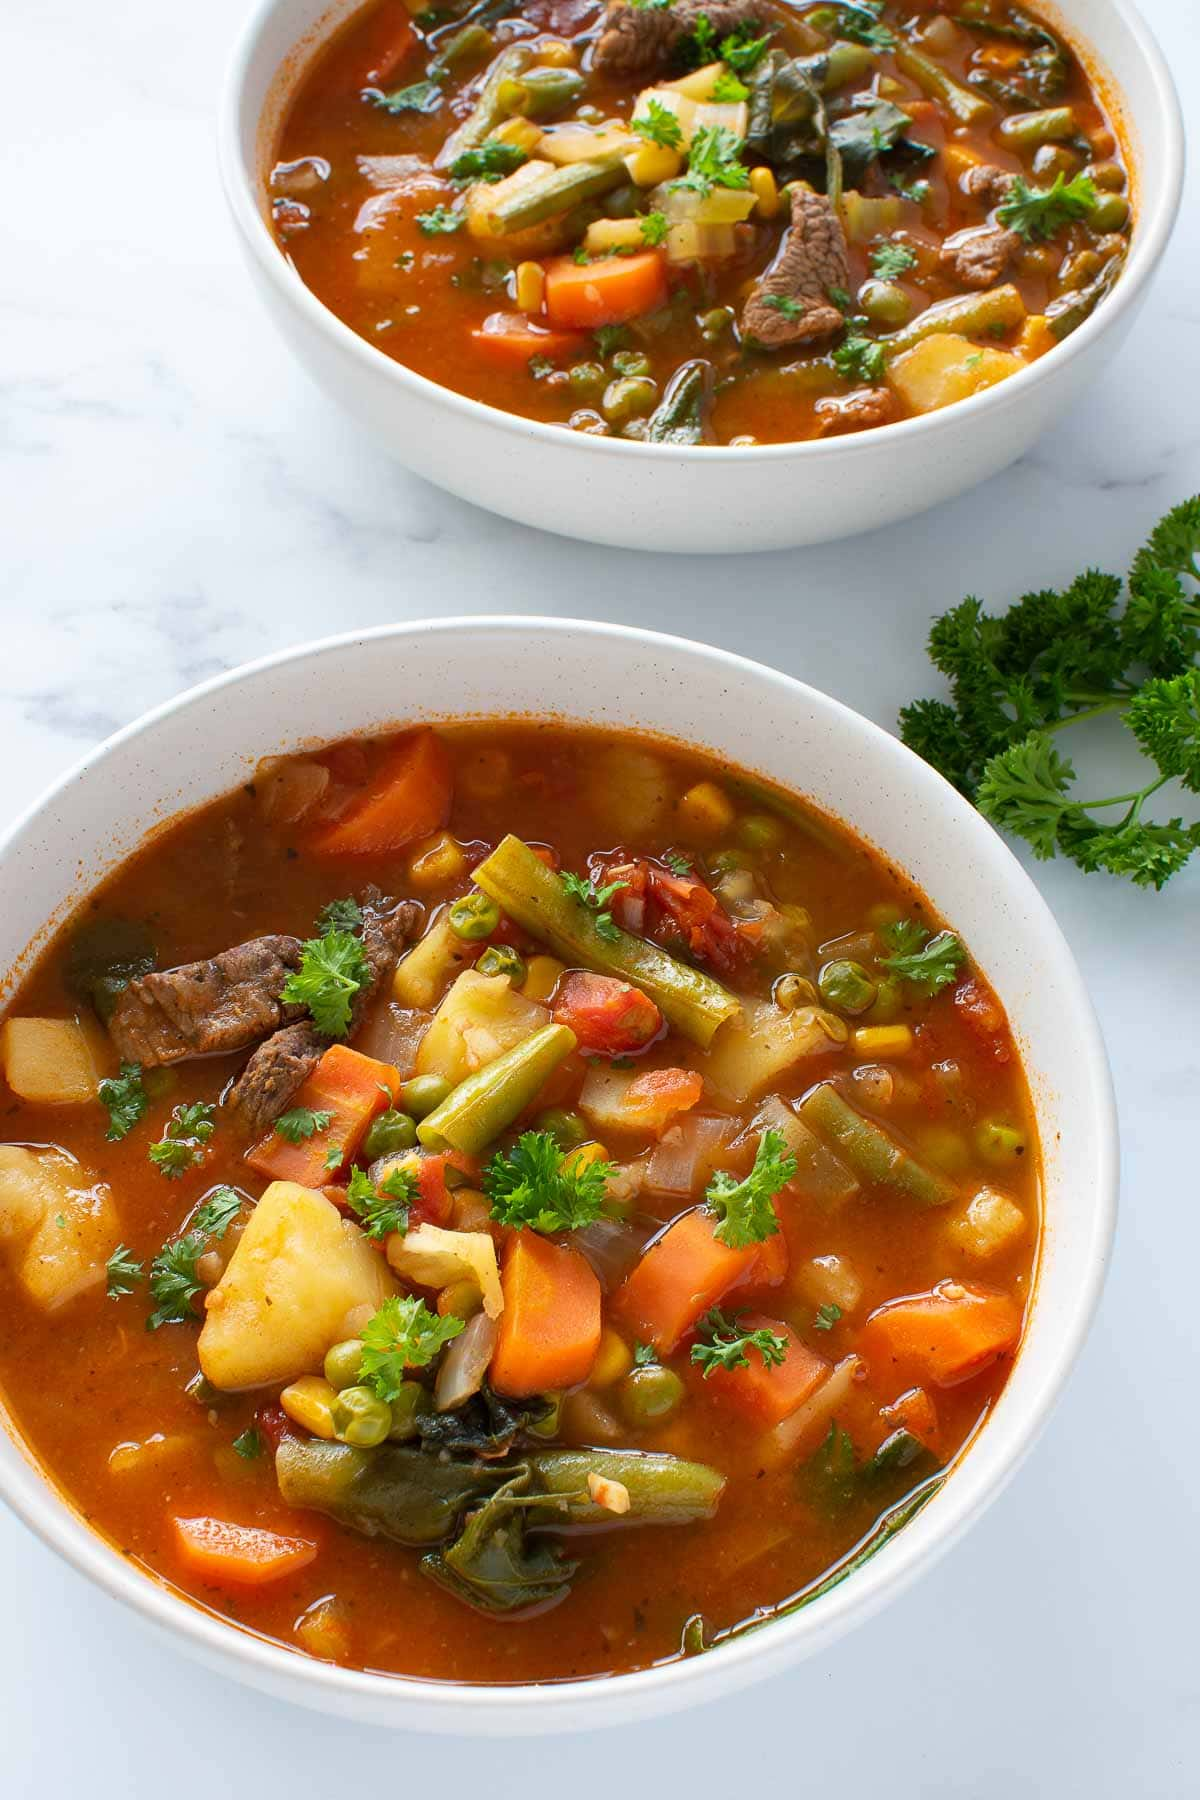 Two bowls of beef soup with potatoes, carrots, green beans and vegetables.